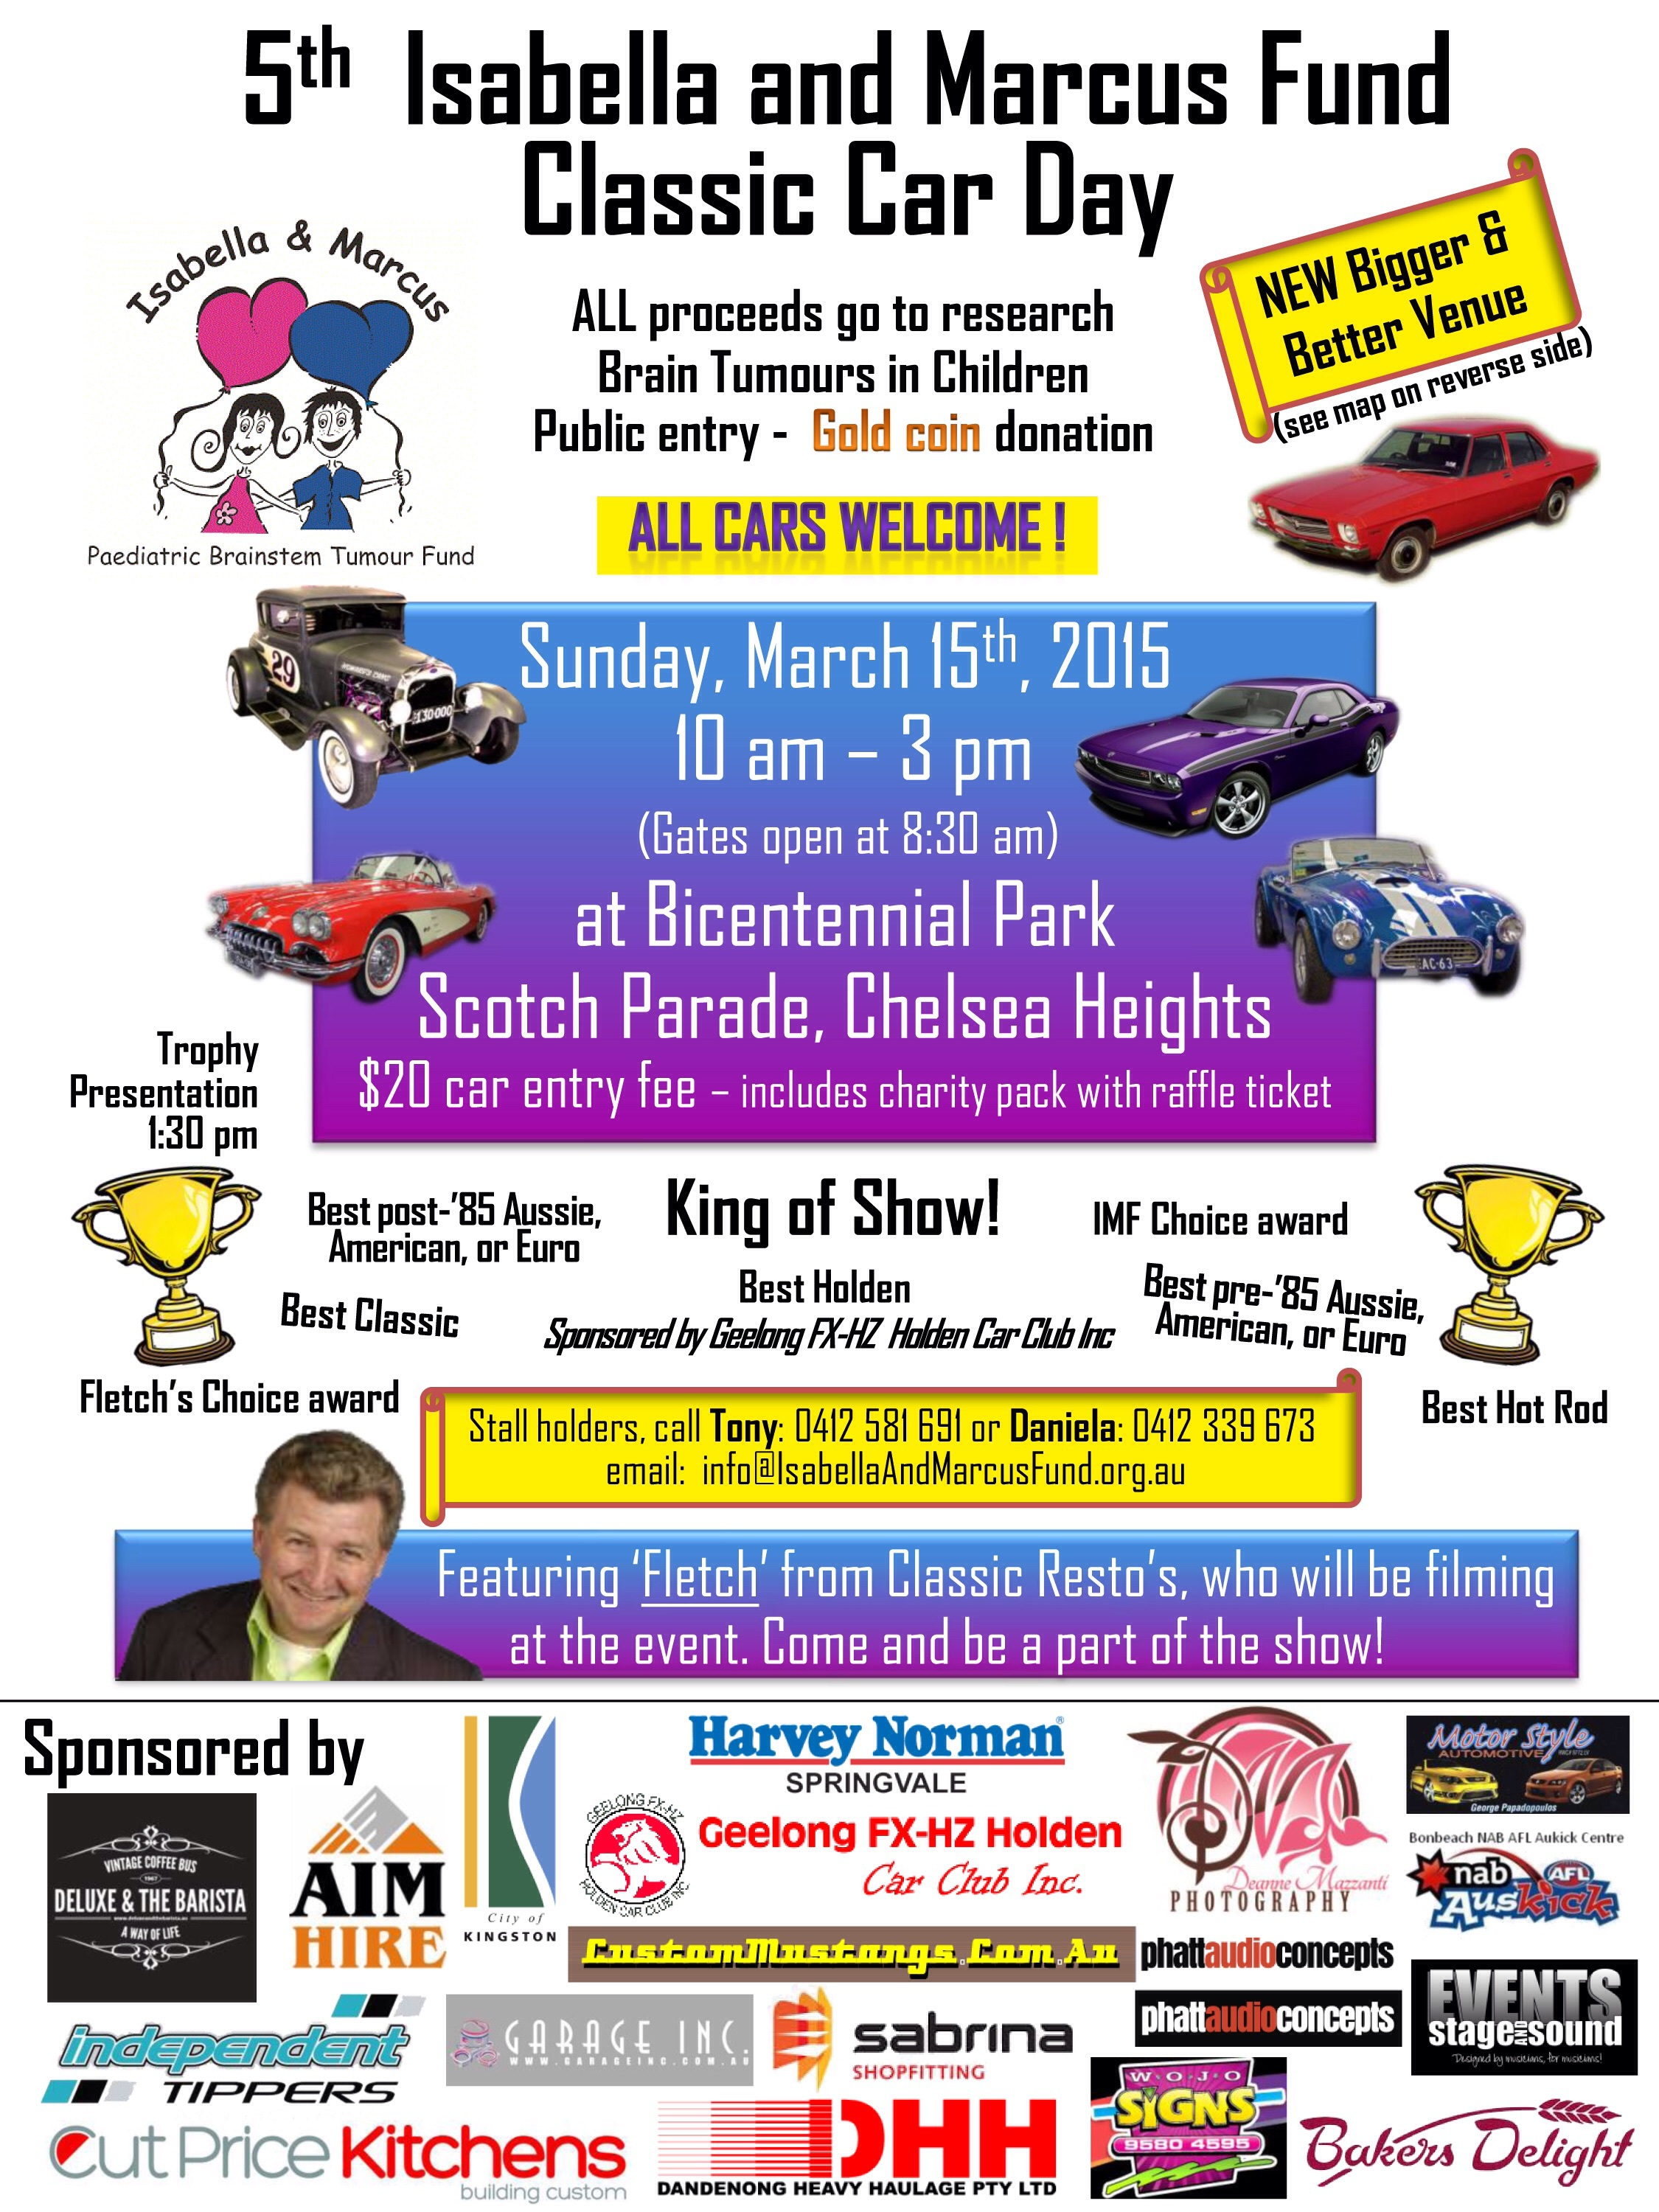 5th Annual Isabella & Marcus Fund Classic Car Day - Melbourne